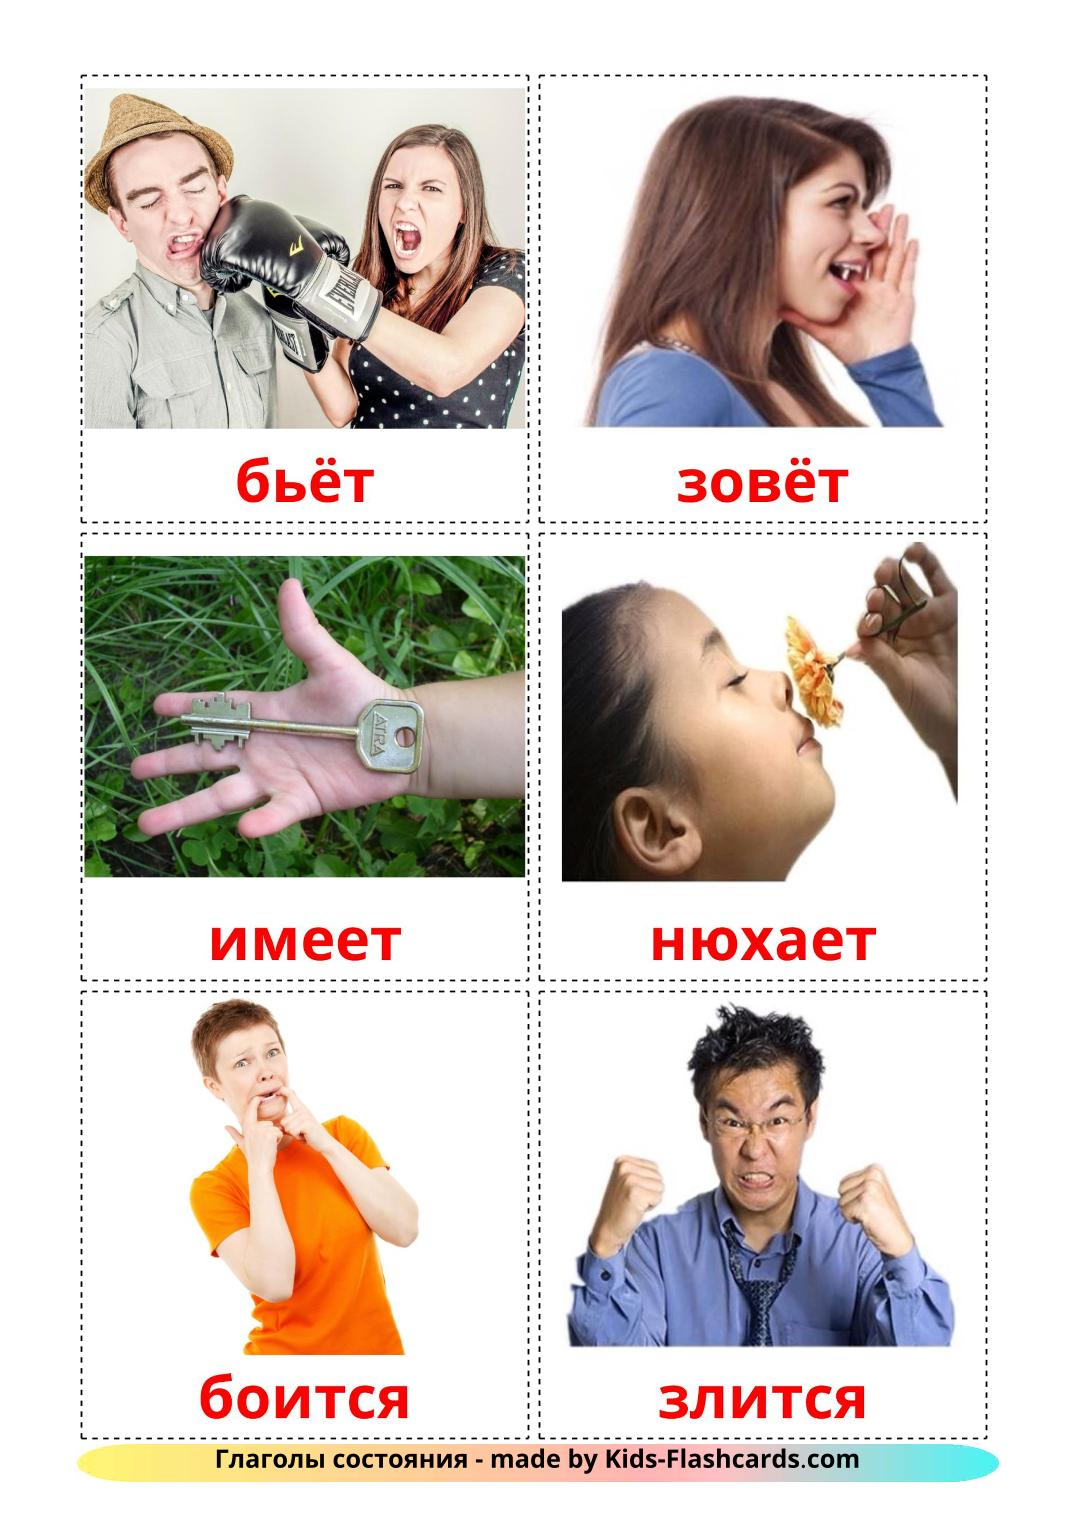 State verbs - 23 Free Printable russian Flashcards